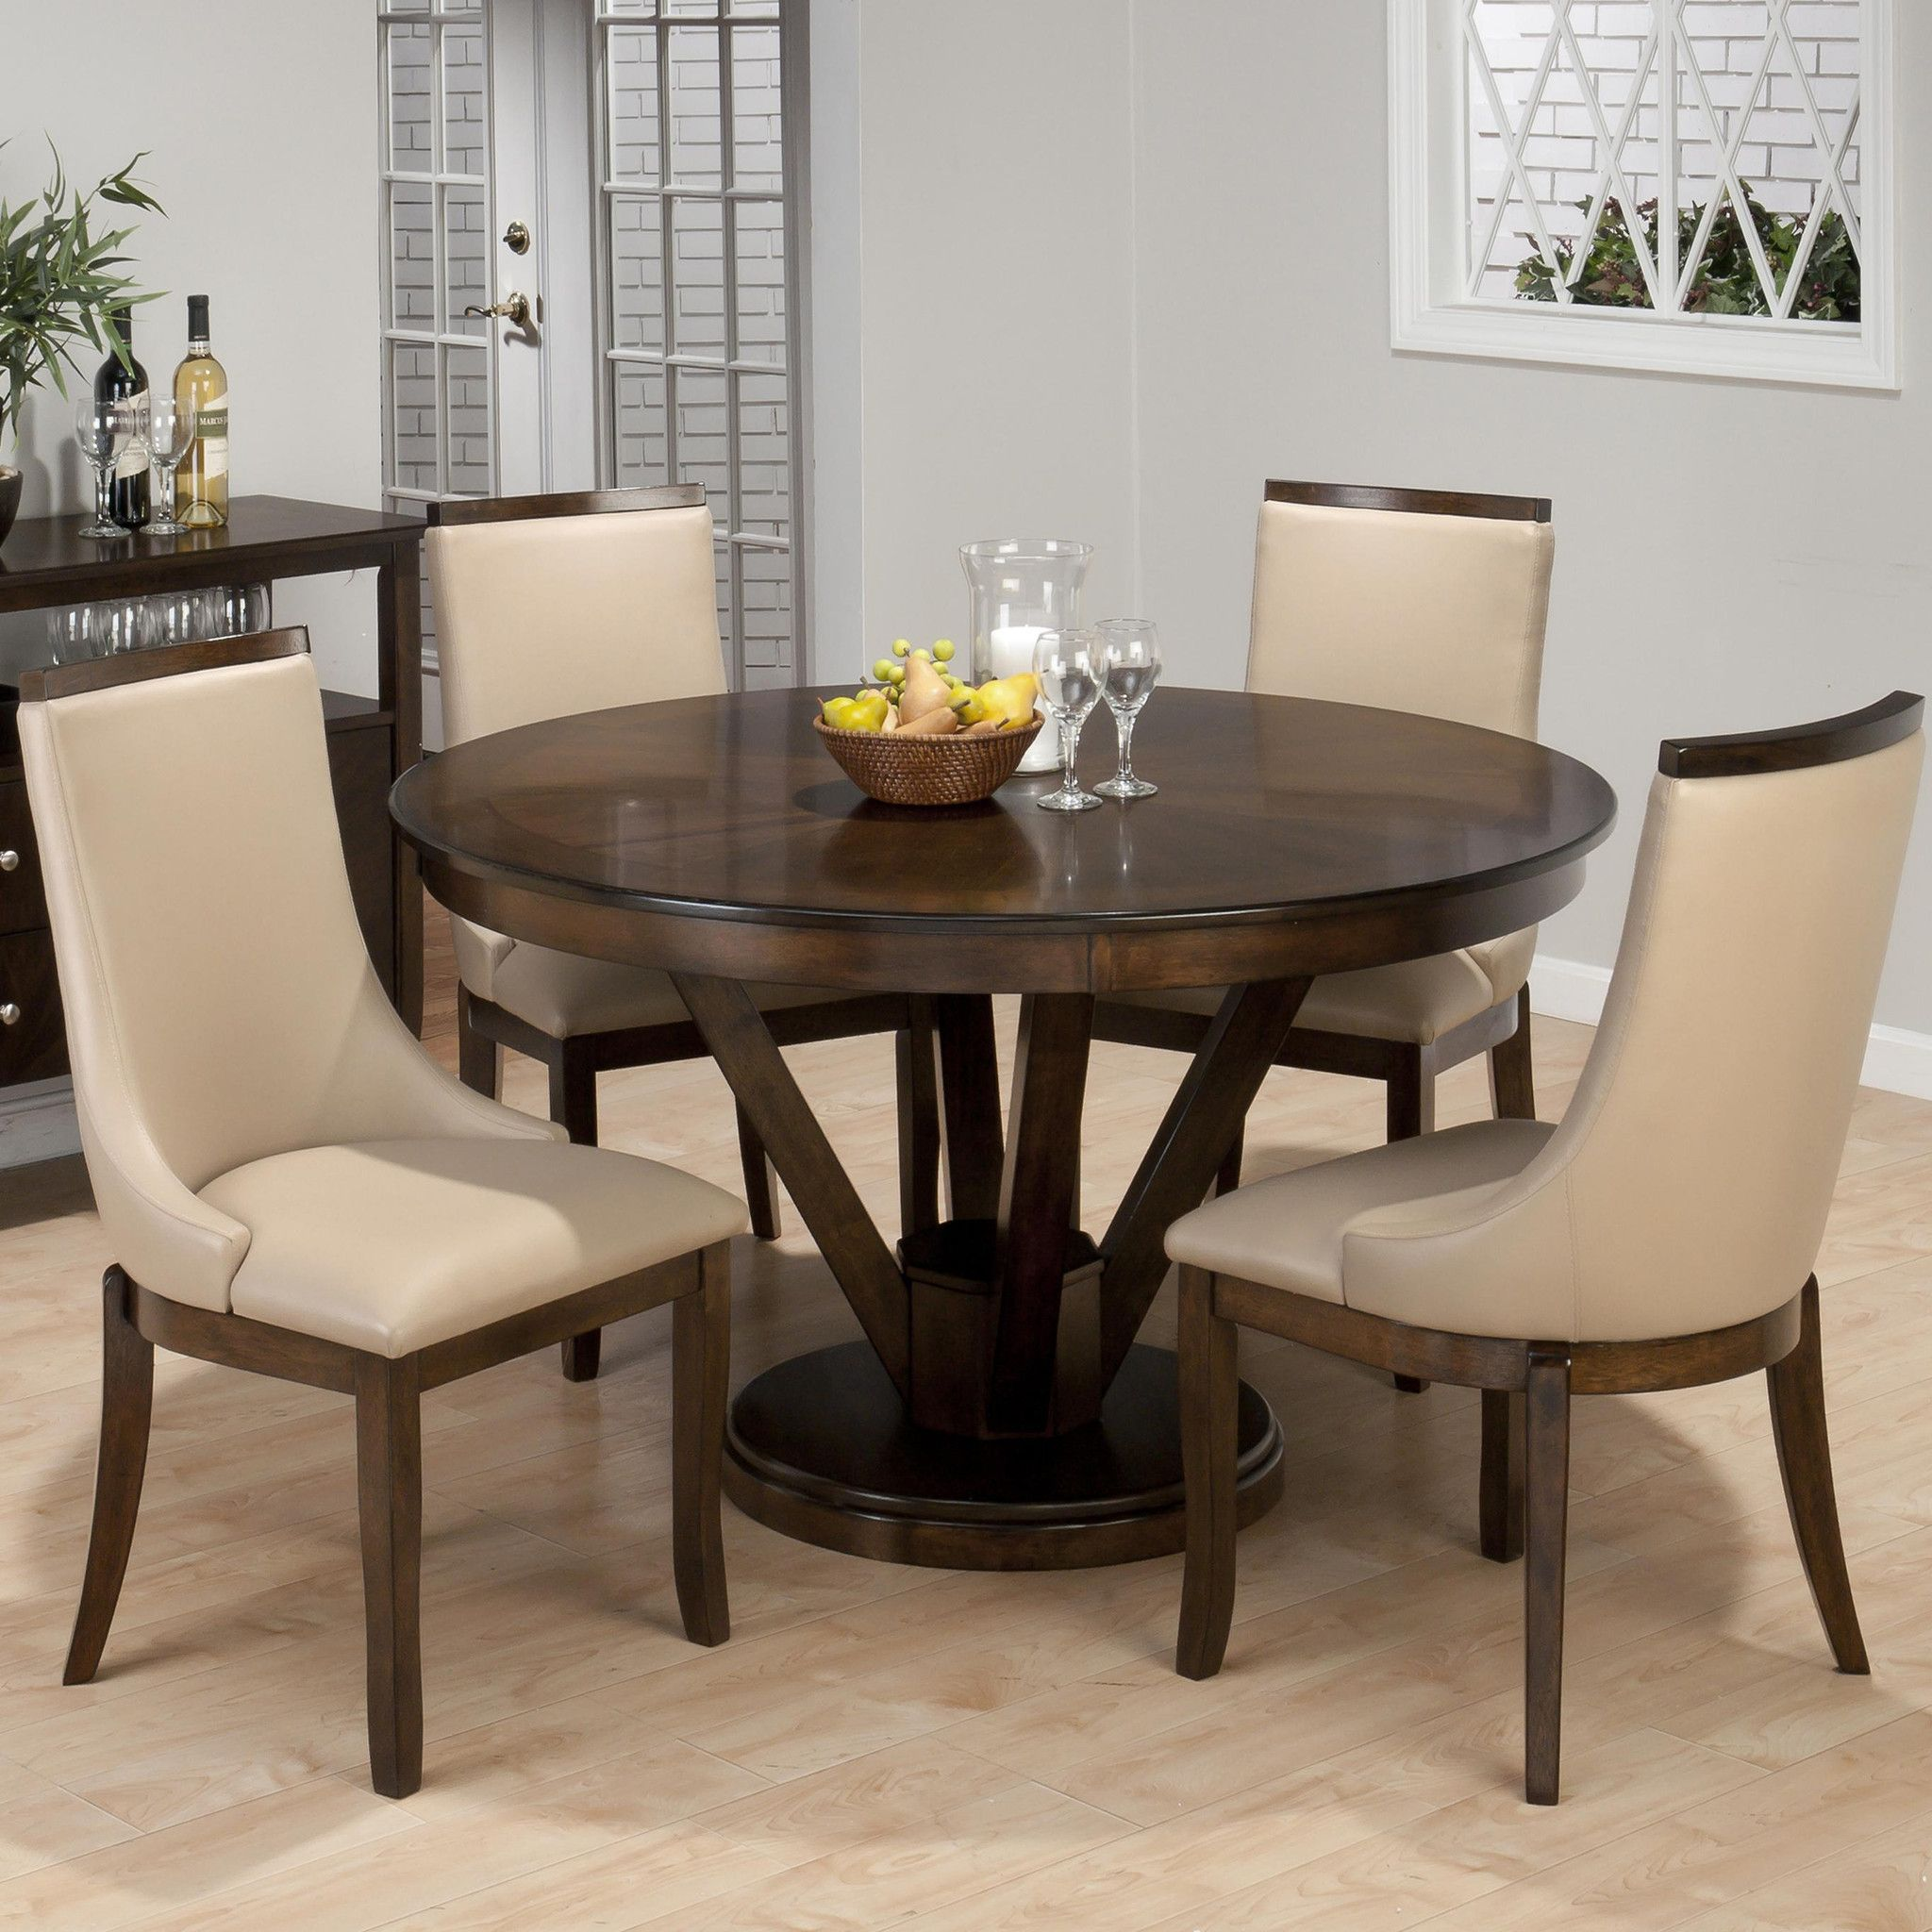 webber walnut casual kitchen dining set with four winged chairs